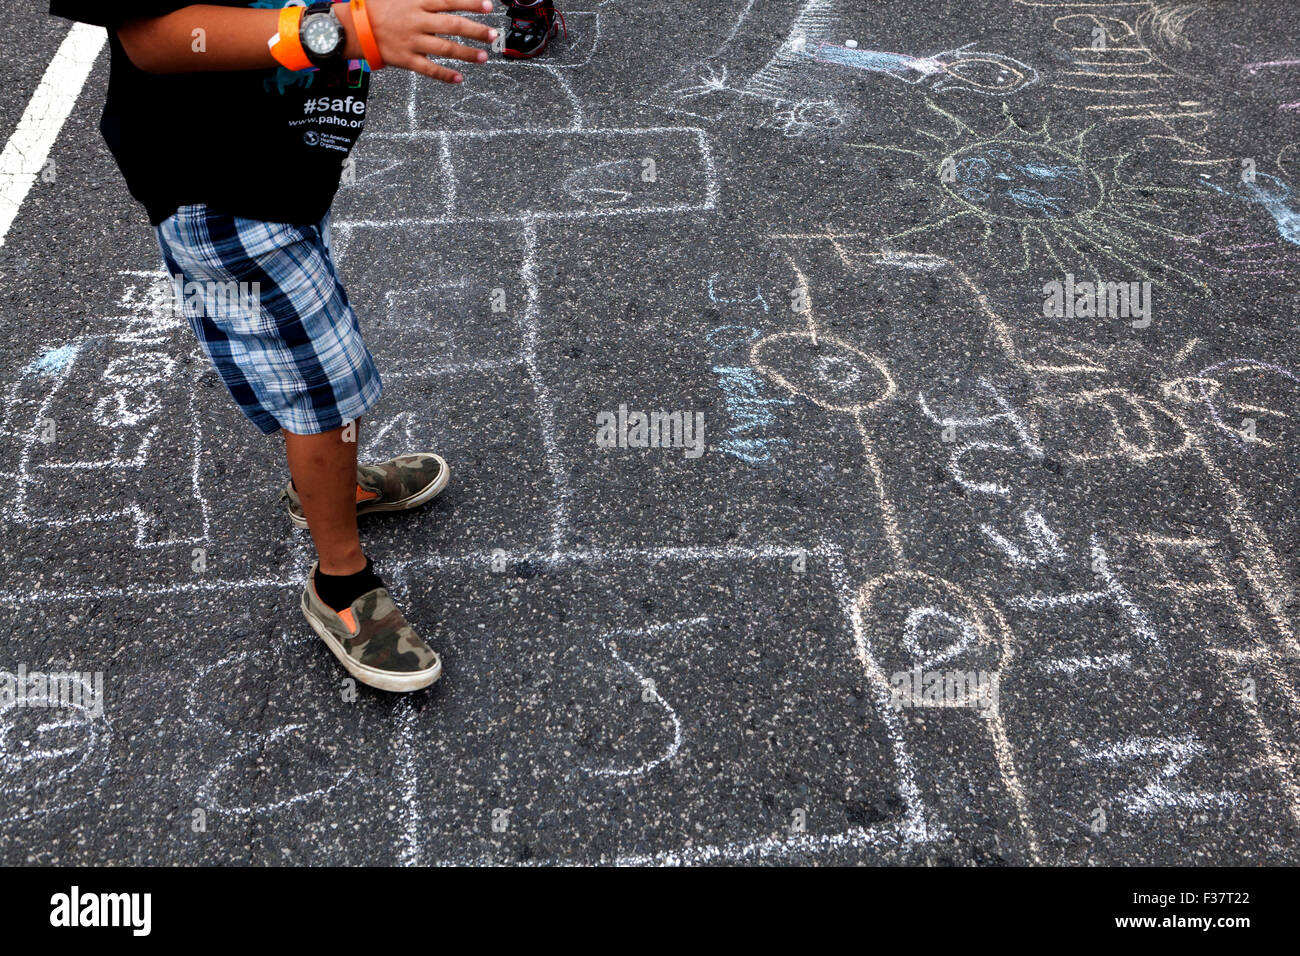 Child chalk drawing on pavement - USA Stock Photo